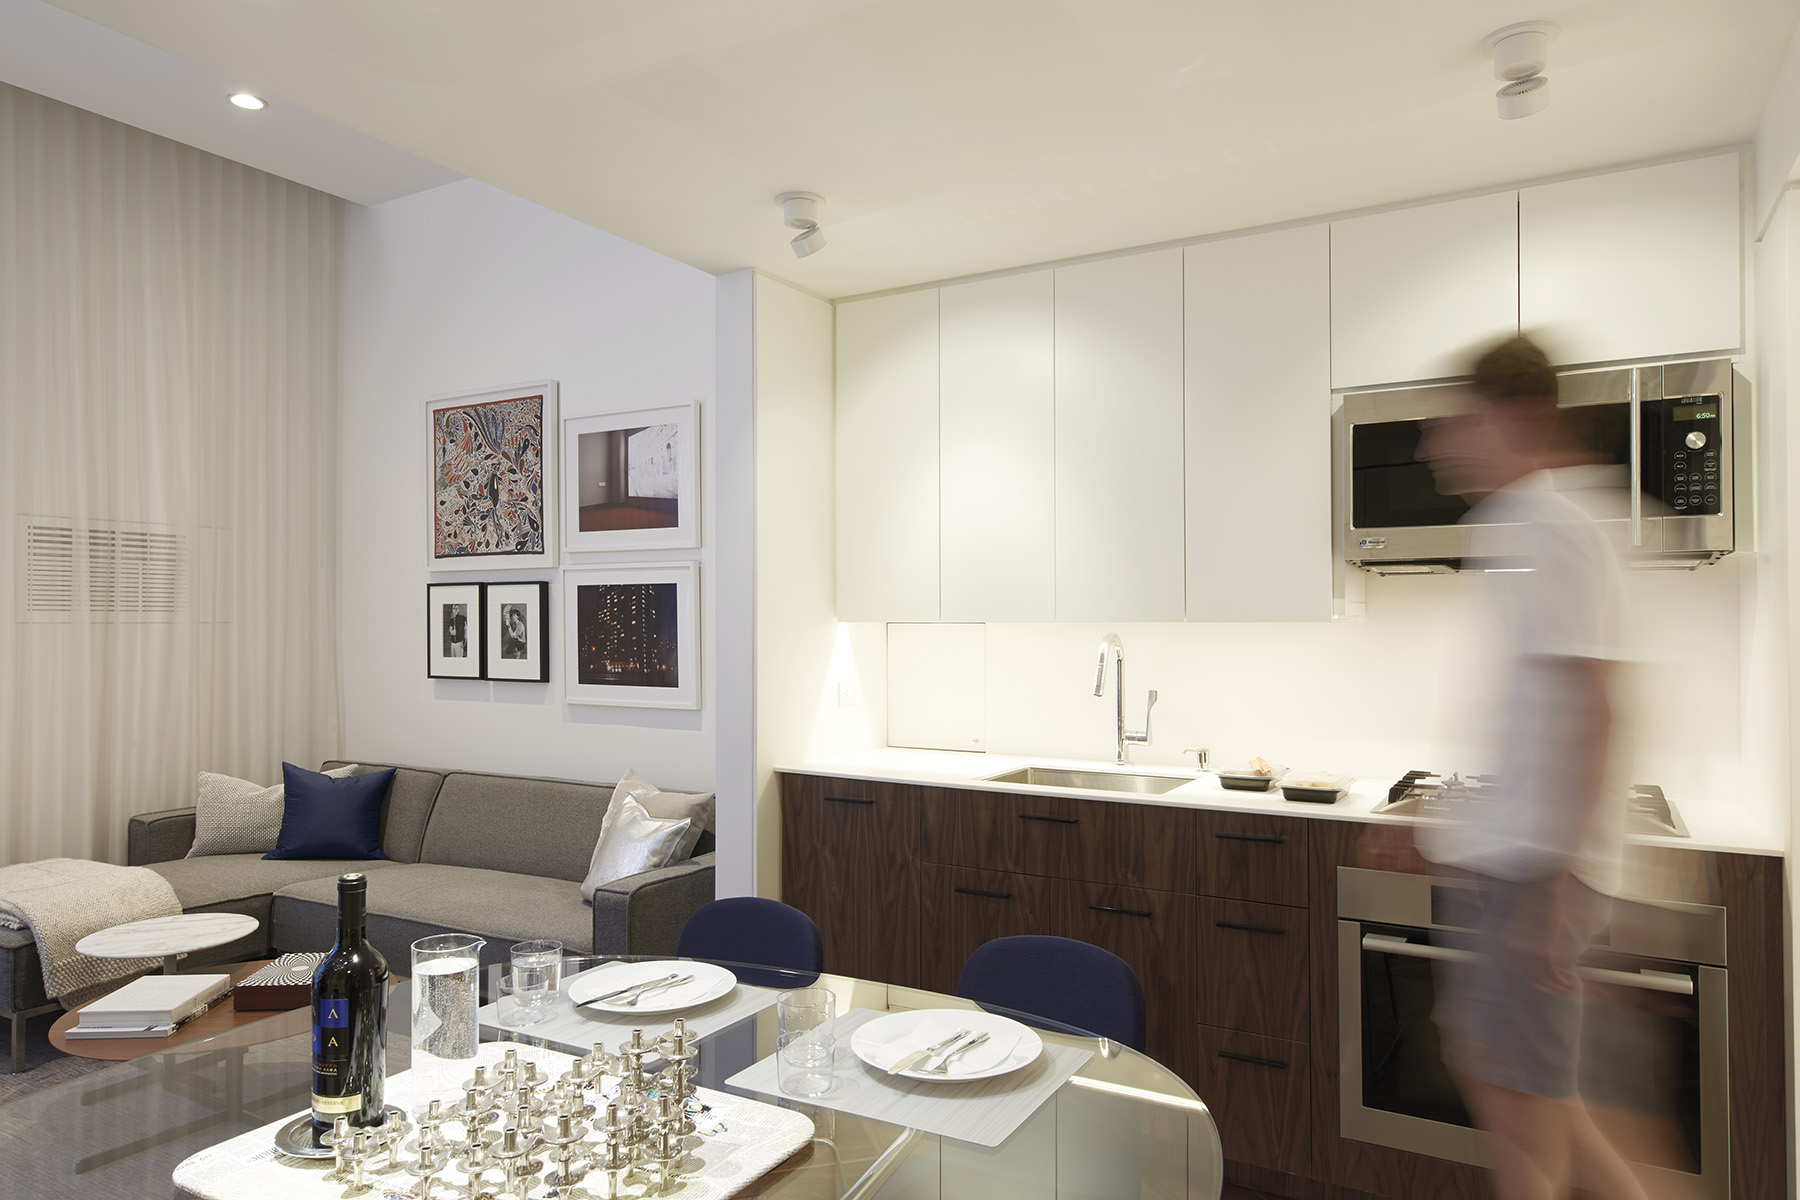 STADT Architecture, Gramercy Apartment, Walnut, Cappellini, Miele, STADT, nyc architects, ny apartment renovation